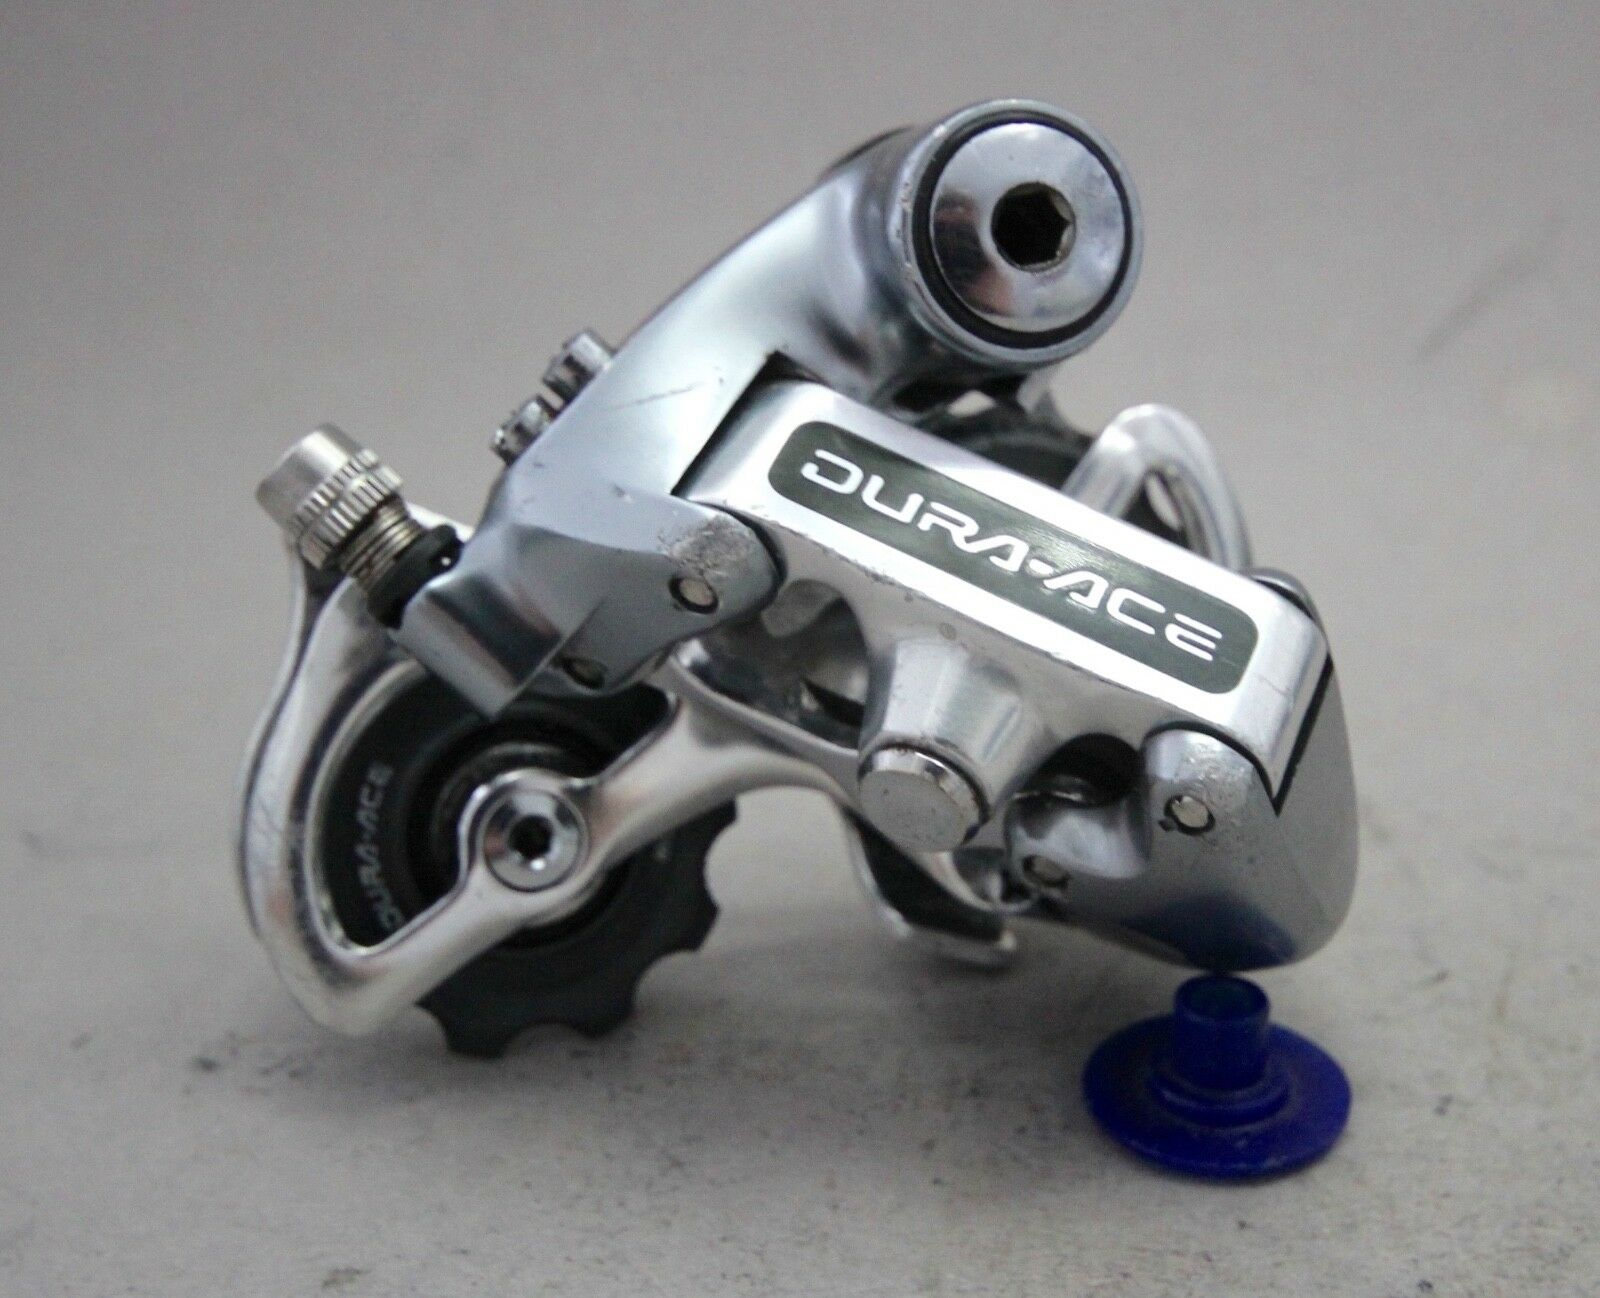 Shimano Dura Ace RD-7402 8-speed SIS integrated rear derailleur  Original wheels  all products get up to 34% off